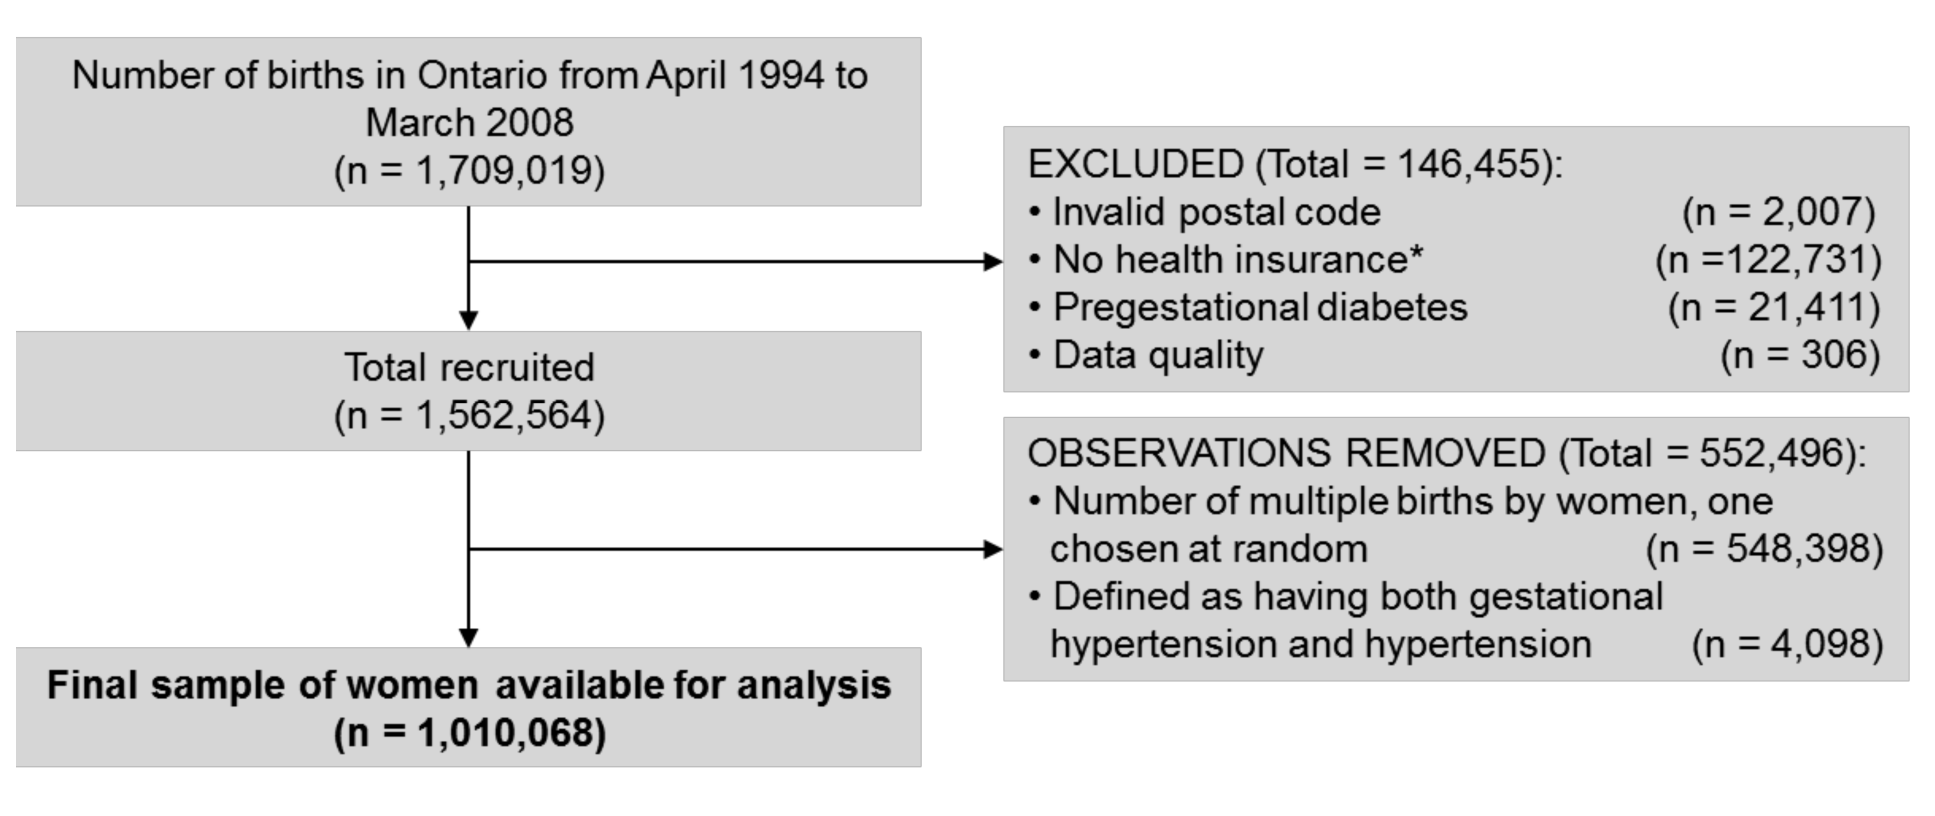 Cohort flow chart illustrating the inclusion and exclusion of participants into the study.